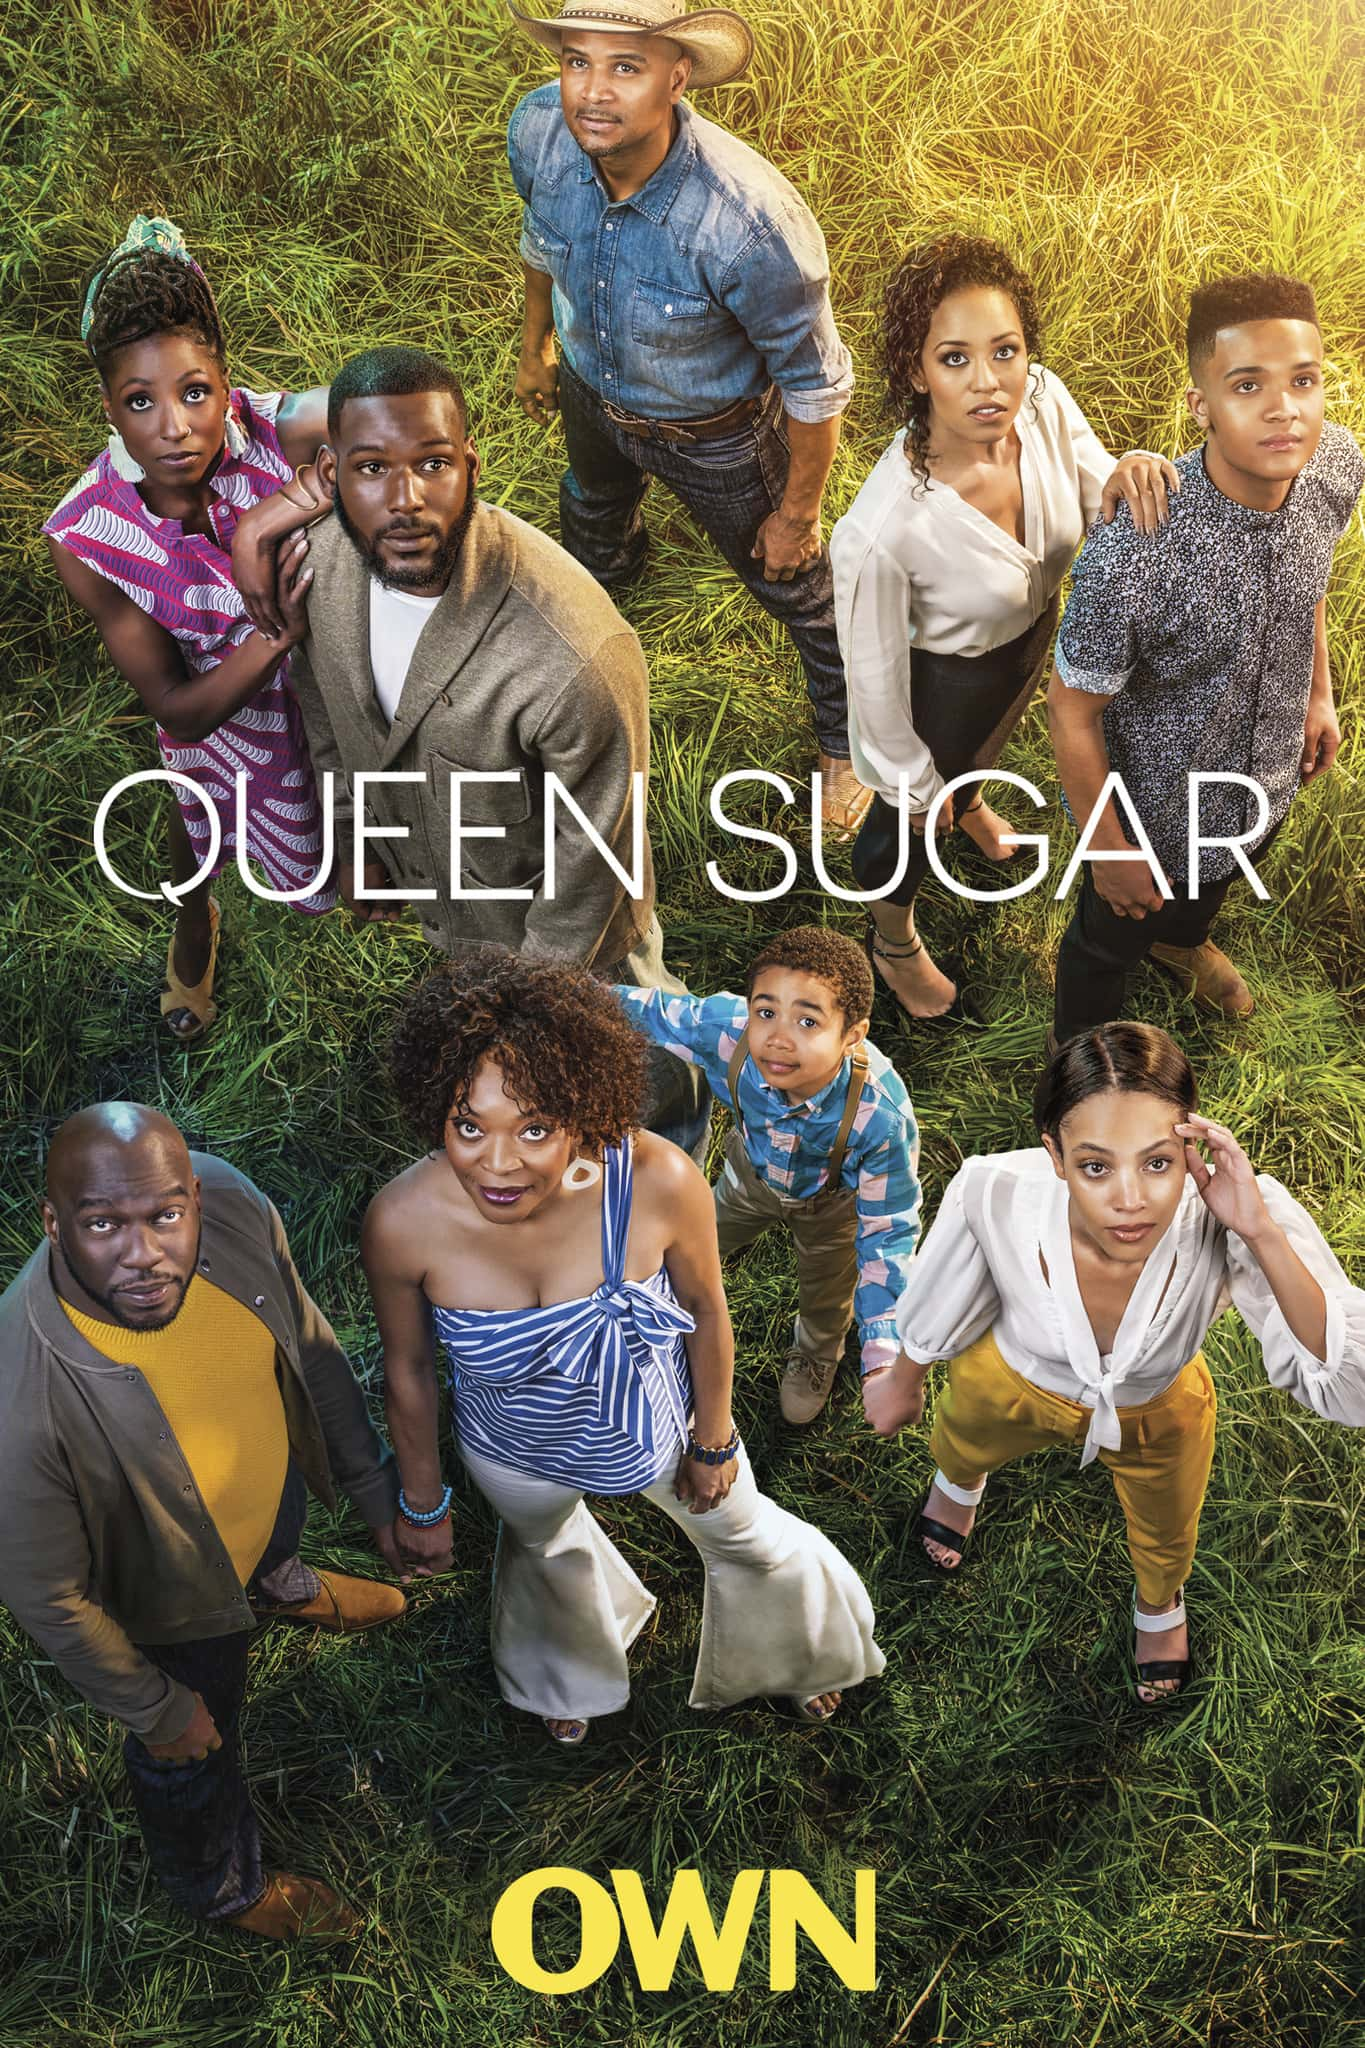 Queen Sugar has been renewed for a fourth season